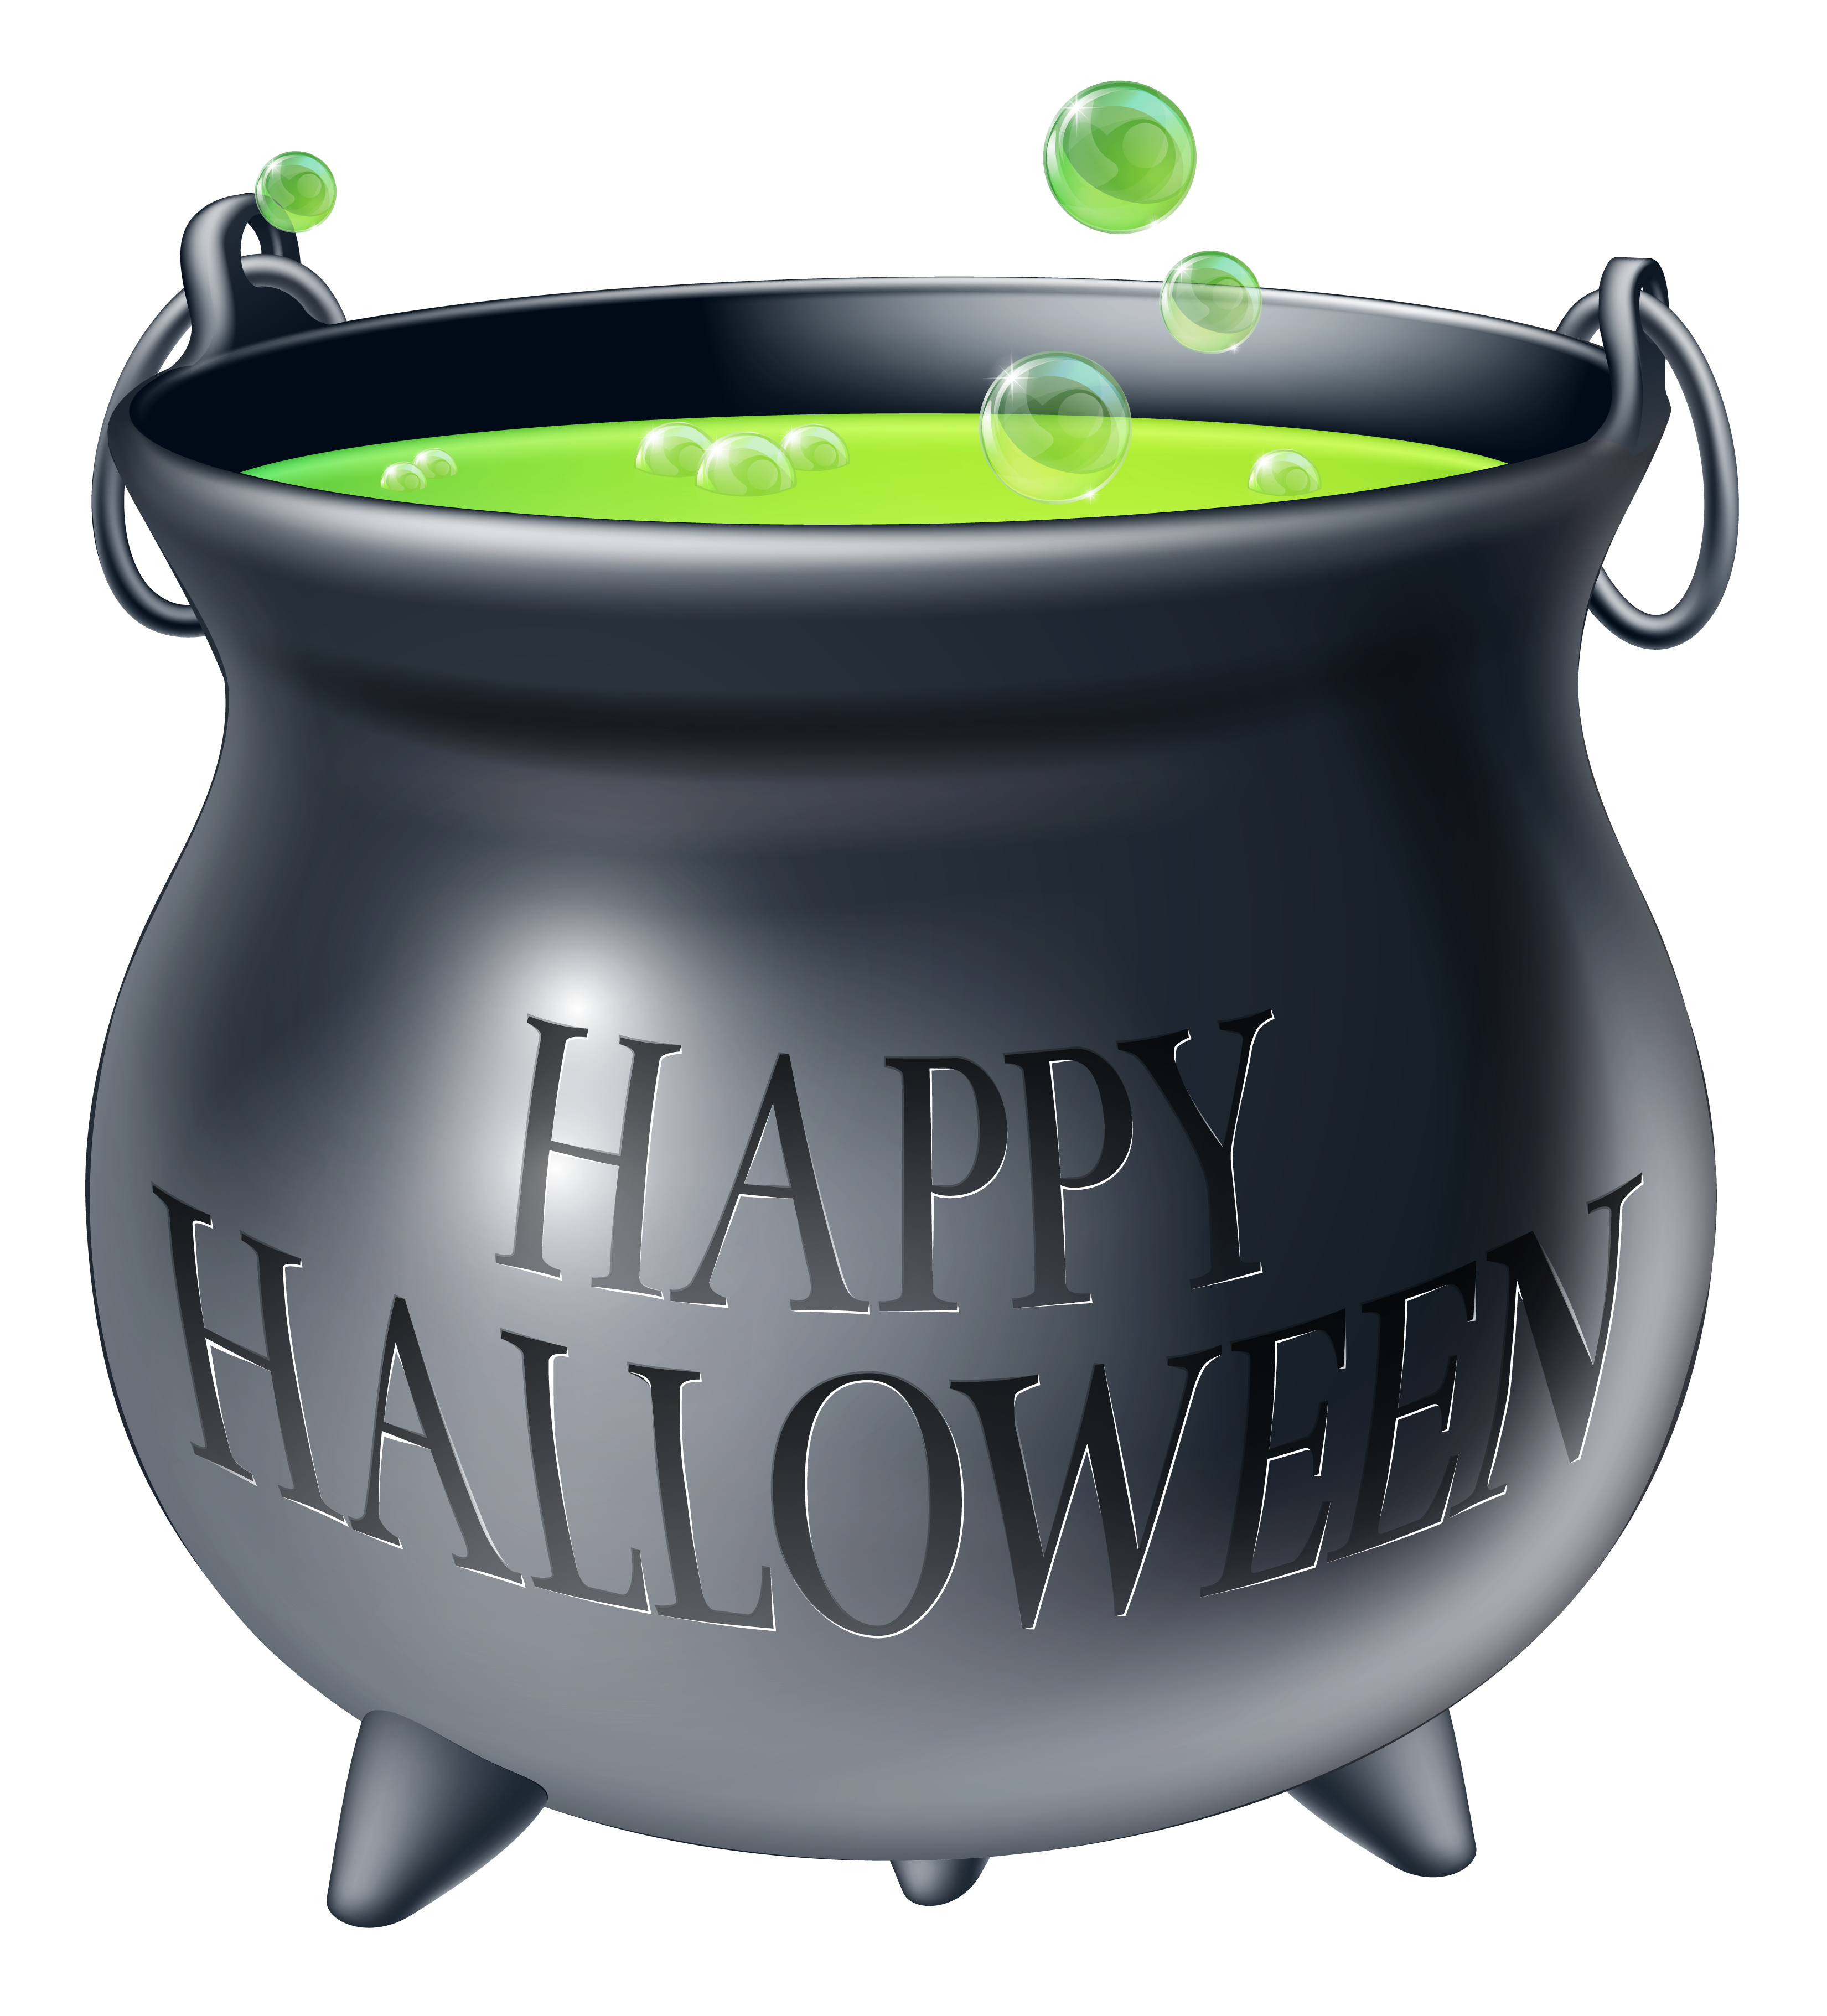 Happy Halloween Witch Cauldron PNG Clipart Picture.